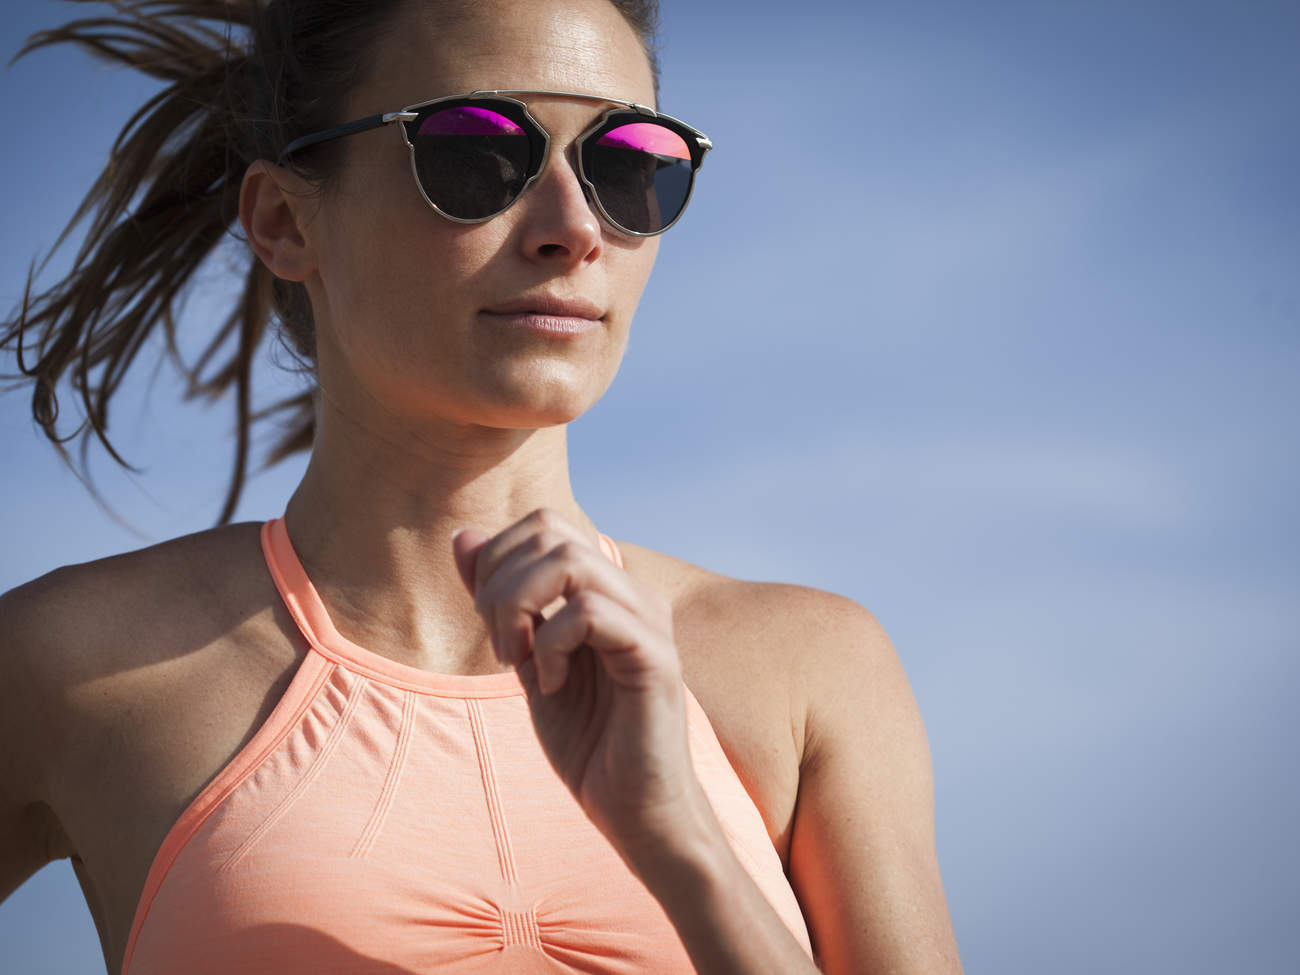 sunglasses-sport-woman-exercise